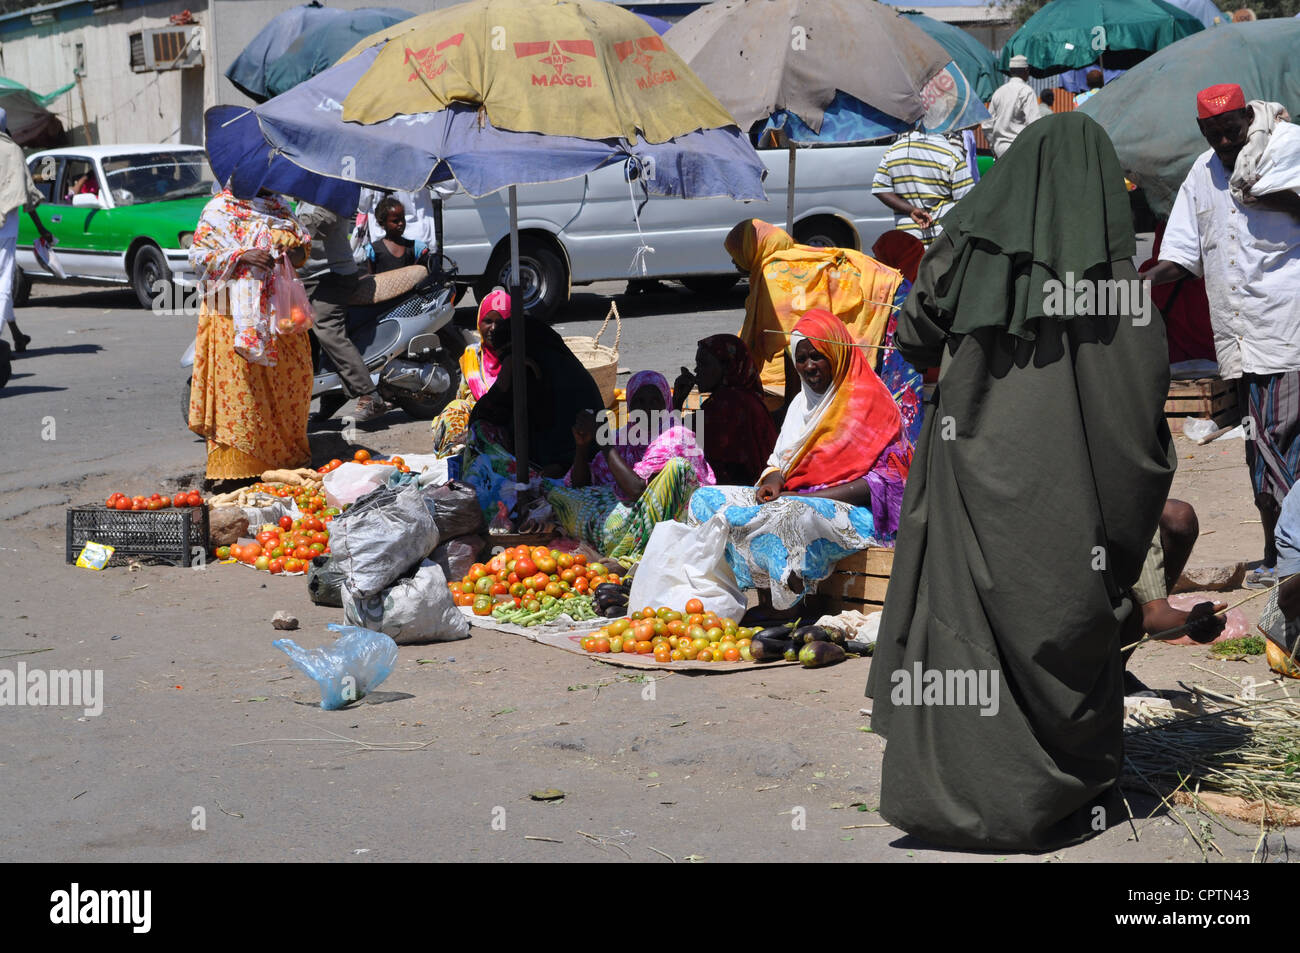 Marketplace in the centre of Djibouti City - Stock Image